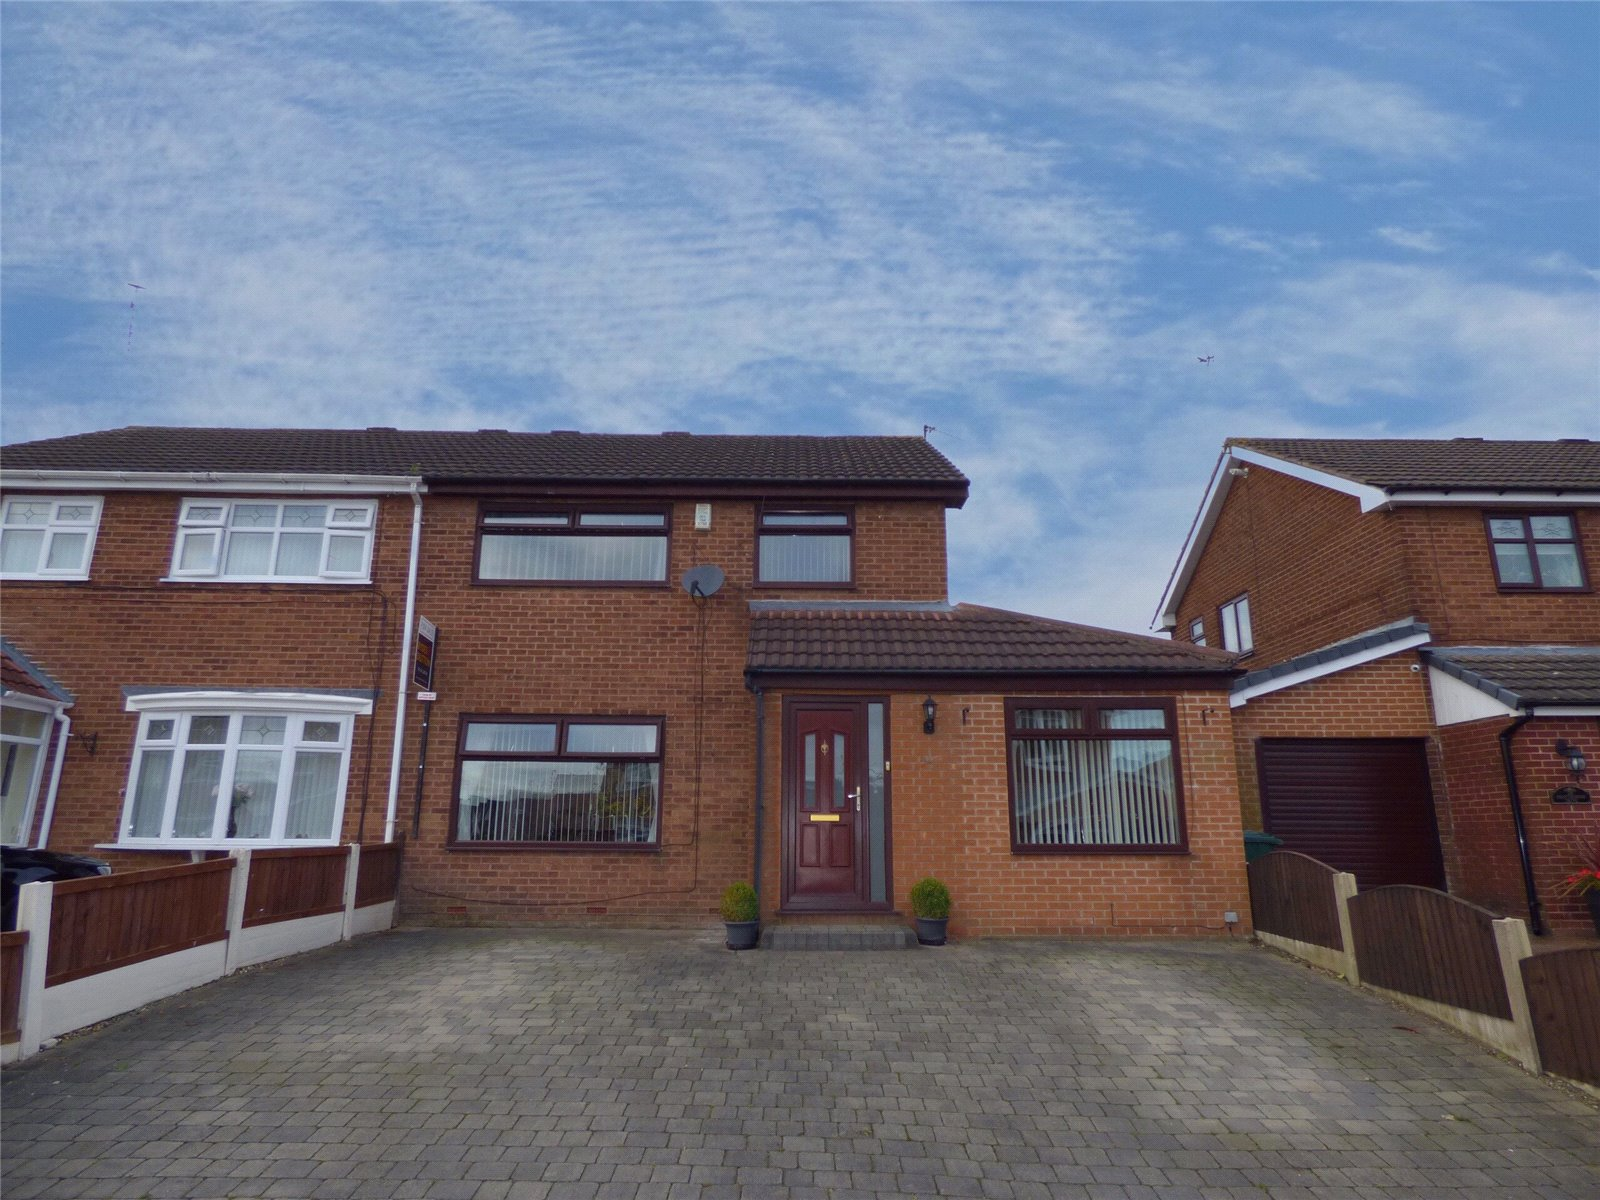 3 Bedrooms Semi Detached House for sale in Shaftesbury Drive, Heywood, Lancashire, OL10